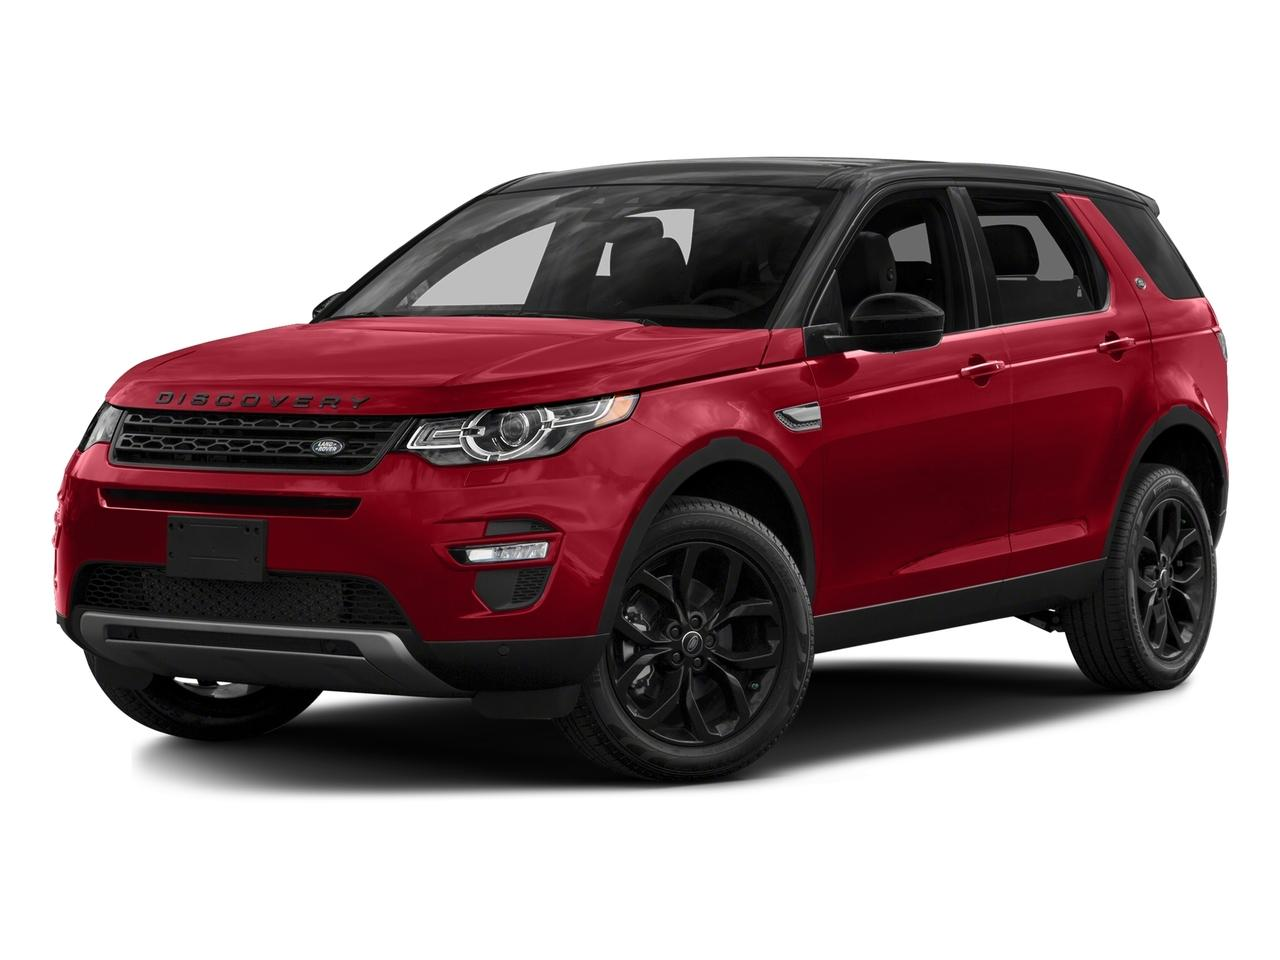 2016 Land Rover Discovery Sport Vehicle Photo in Grapevine, TX 76051